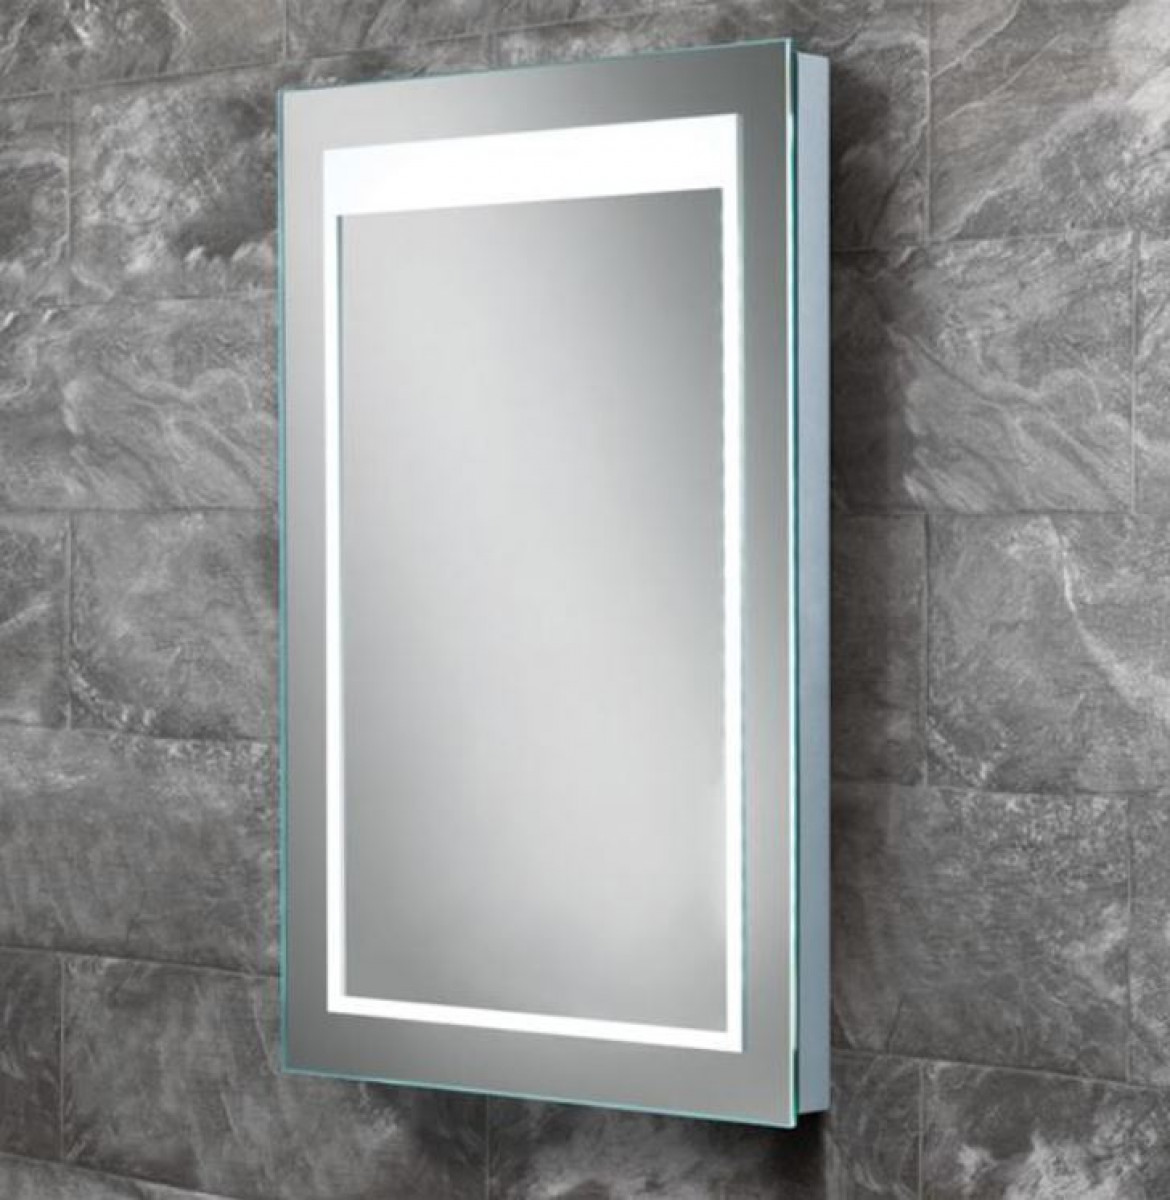 Suck uk led miroir